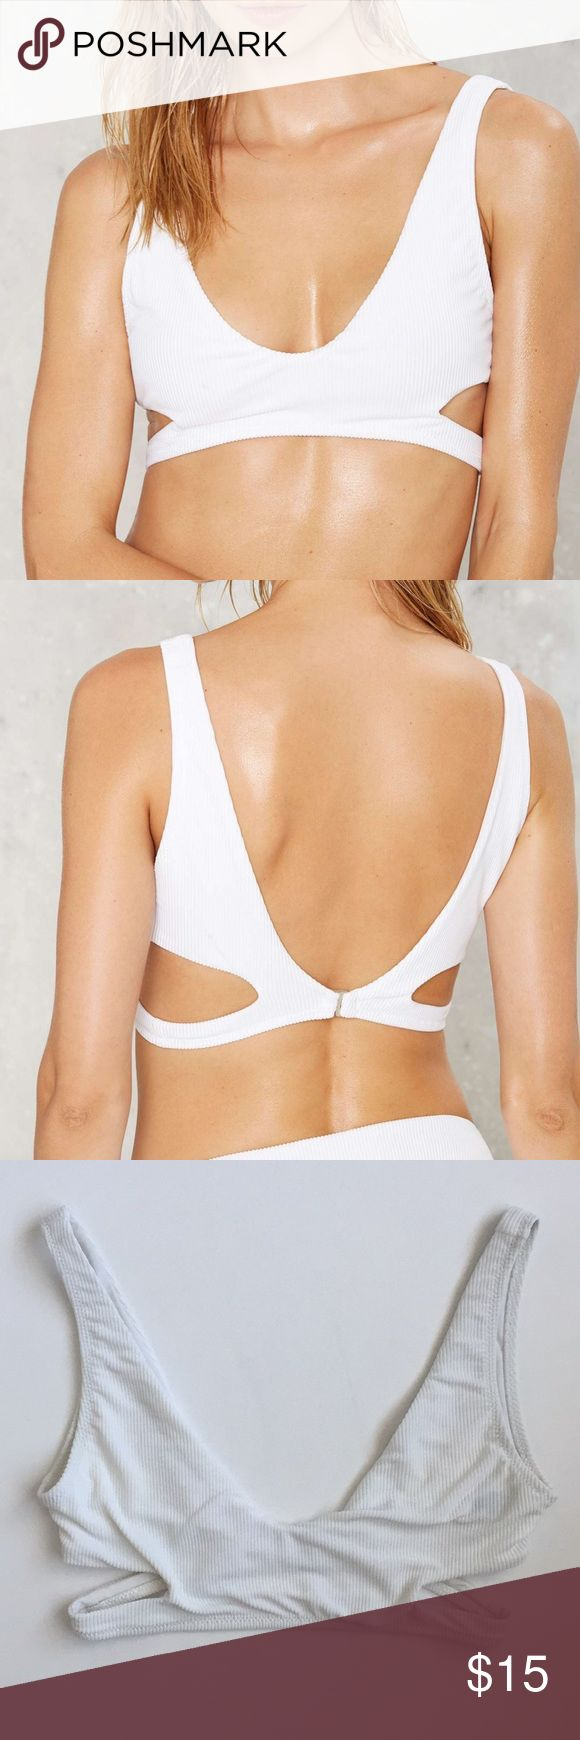 White Alina ribbed cutout bikini top by Nasty Gal White bikini top with cut out features. Hooks in the back with silver hardware   ❗️has some pulling of the fabric. Looks like Velcro got stuck to it almost. Some darker discoloration and imperfections on it❗️  NWT  By Nasty Gal Size XL Nasty Gal Swim Bikinis